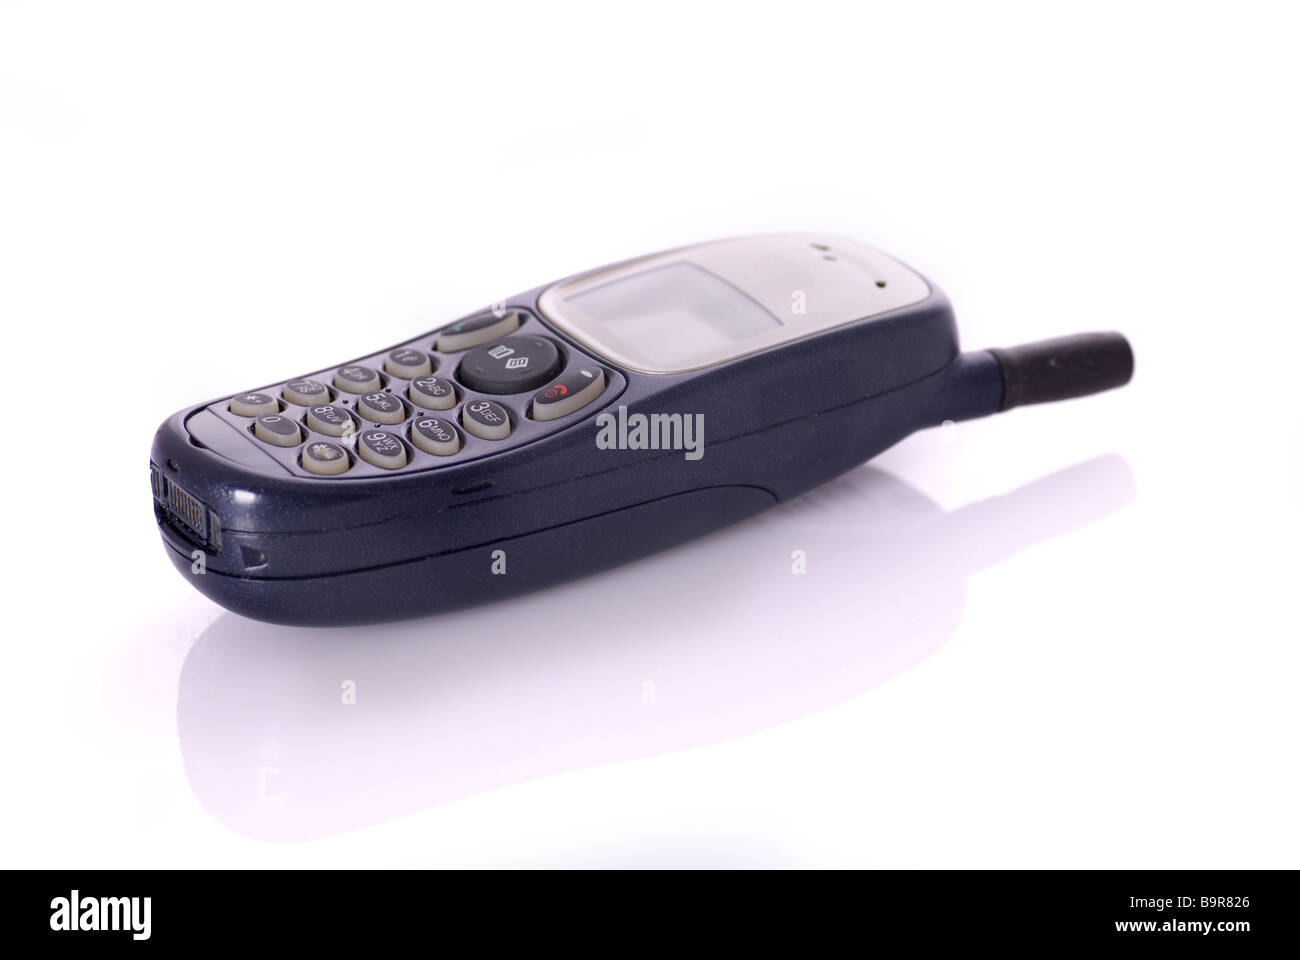 Still life image of an old fashioned mobile cell phone on a white background - Stock Image